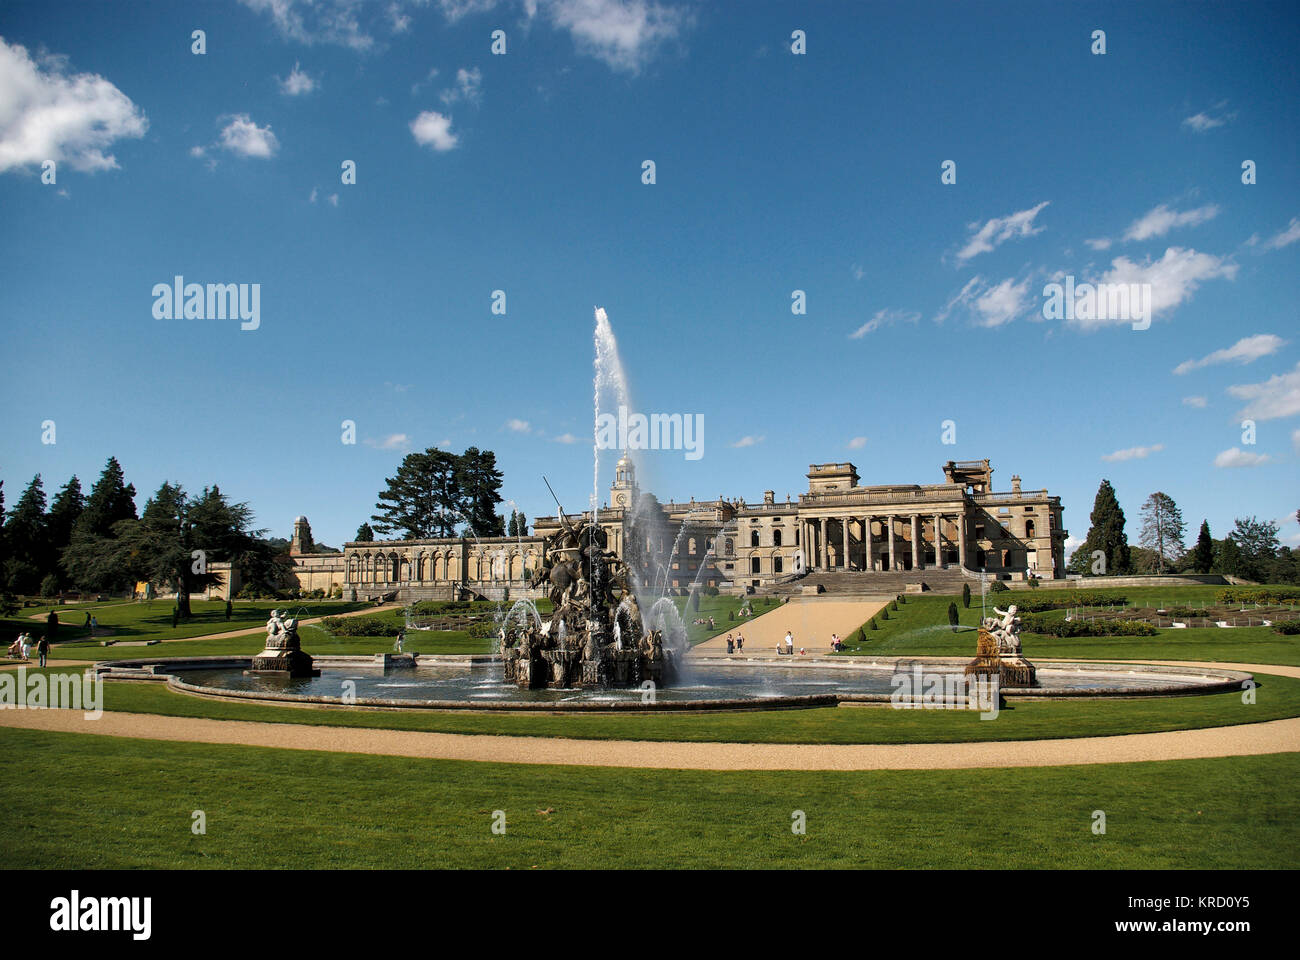 General view of Witley Court, Worcestershire, with the Perseus and Andromeda fountain in full flow in the foreground. - Stock Image